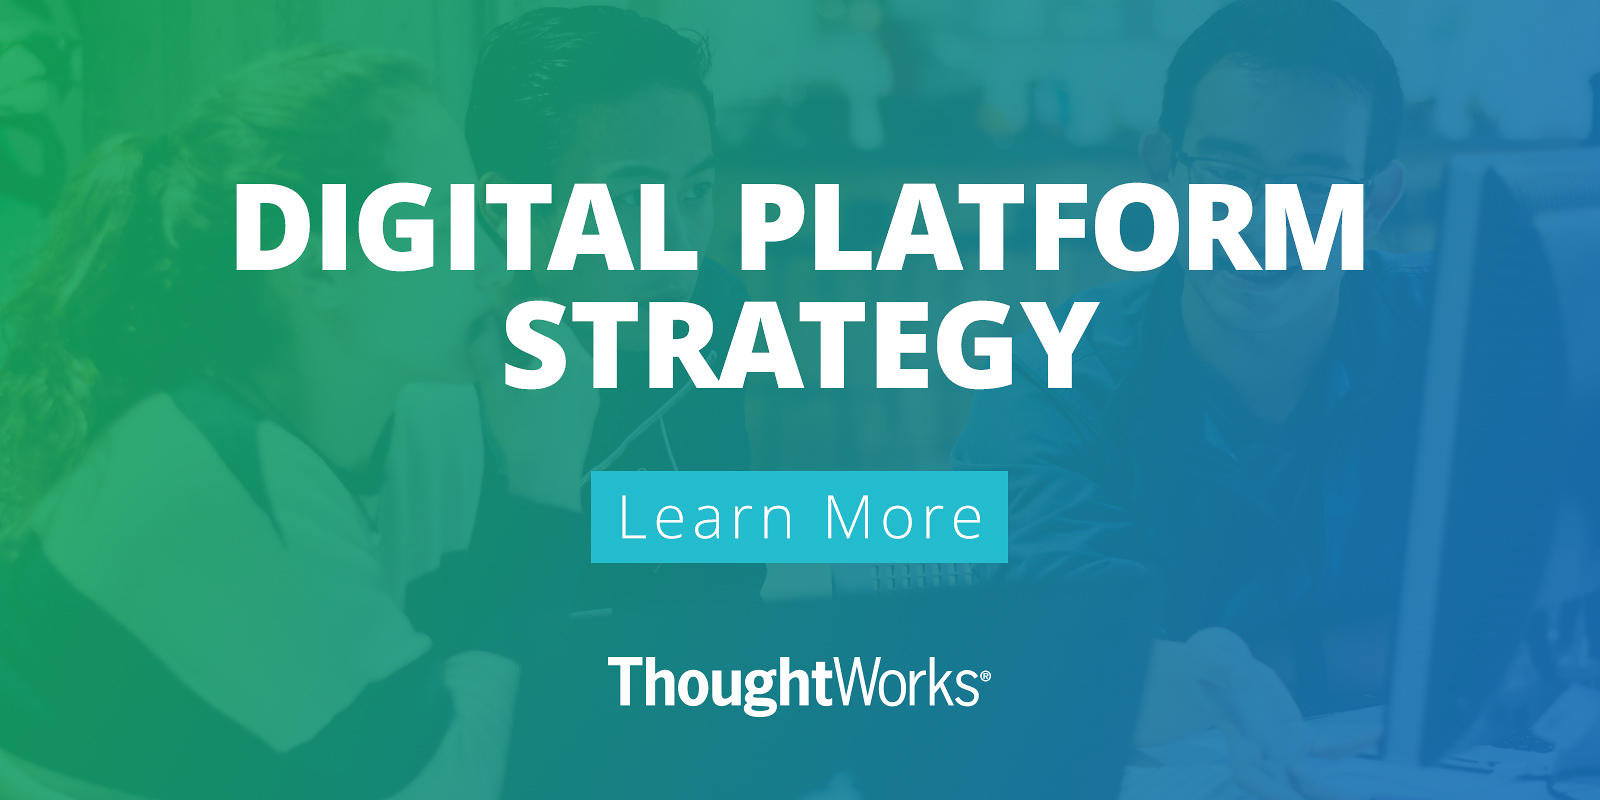 Digital Platform Strategy Thoughtworks